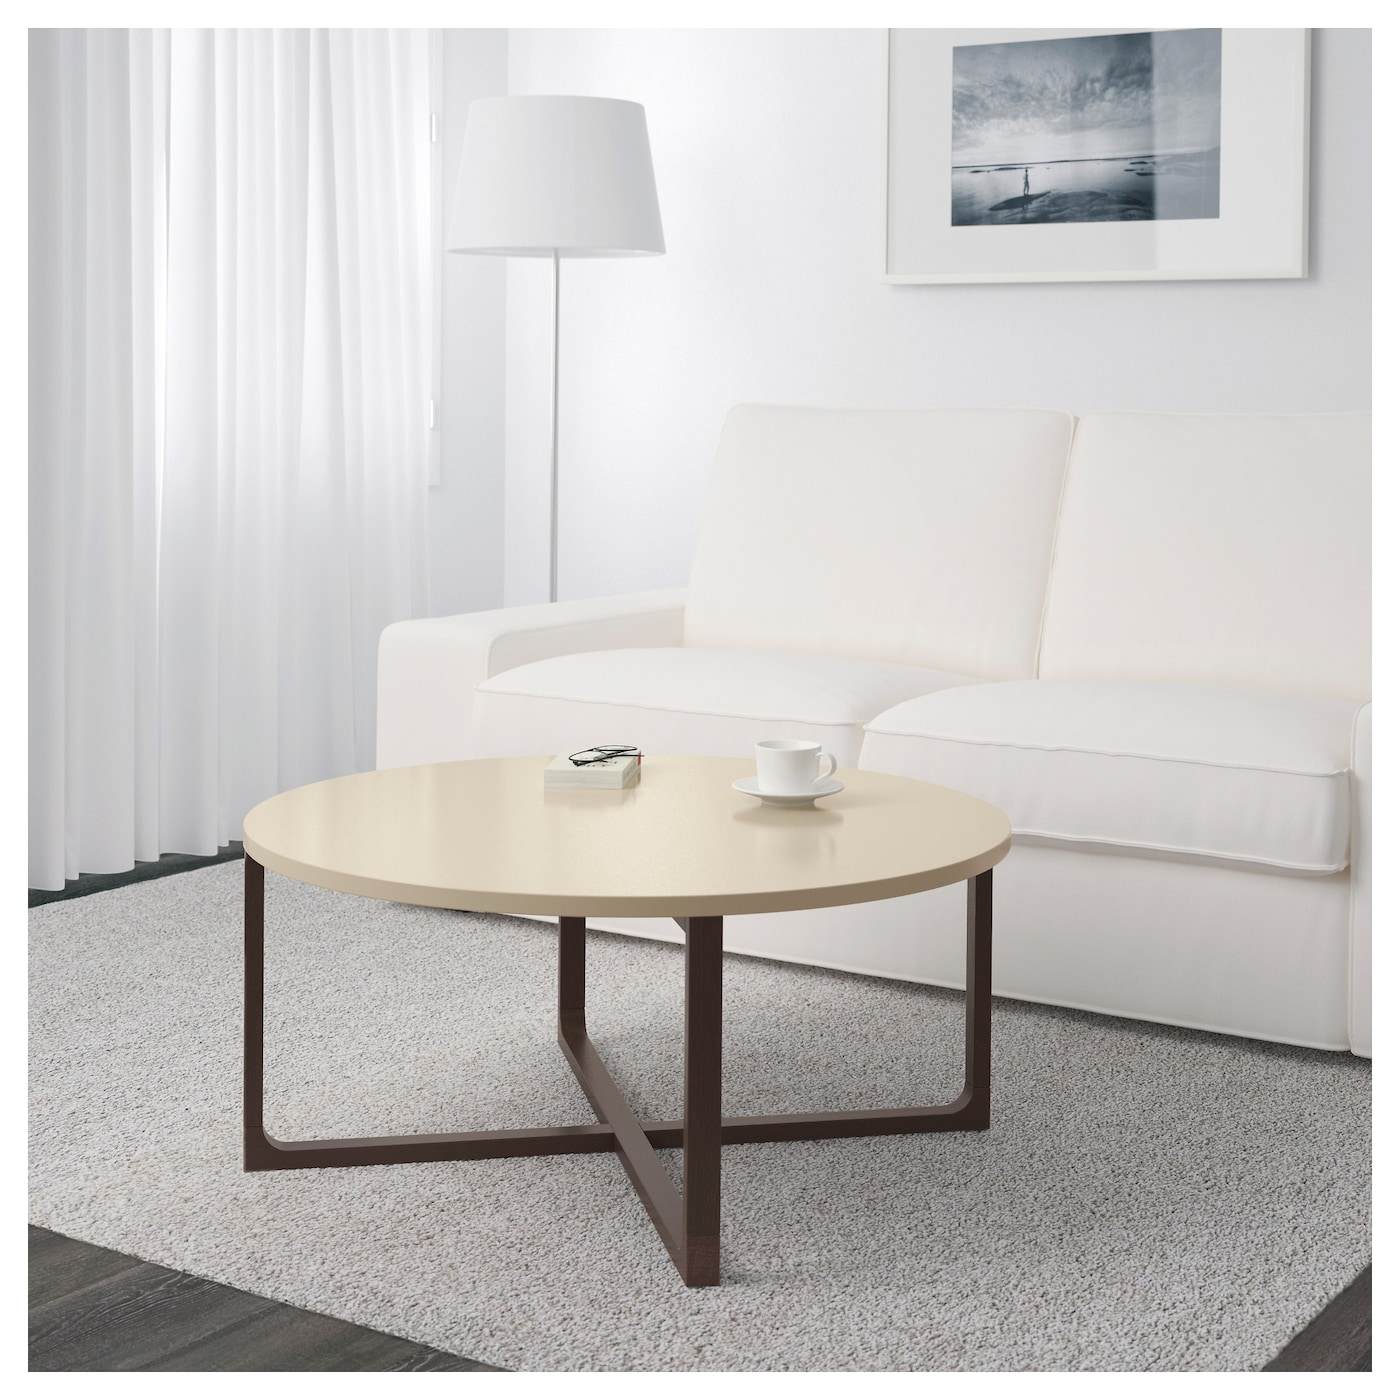 Beige Trunk Coffee Table: RISSNA Coffee Table Beige 90 Cm